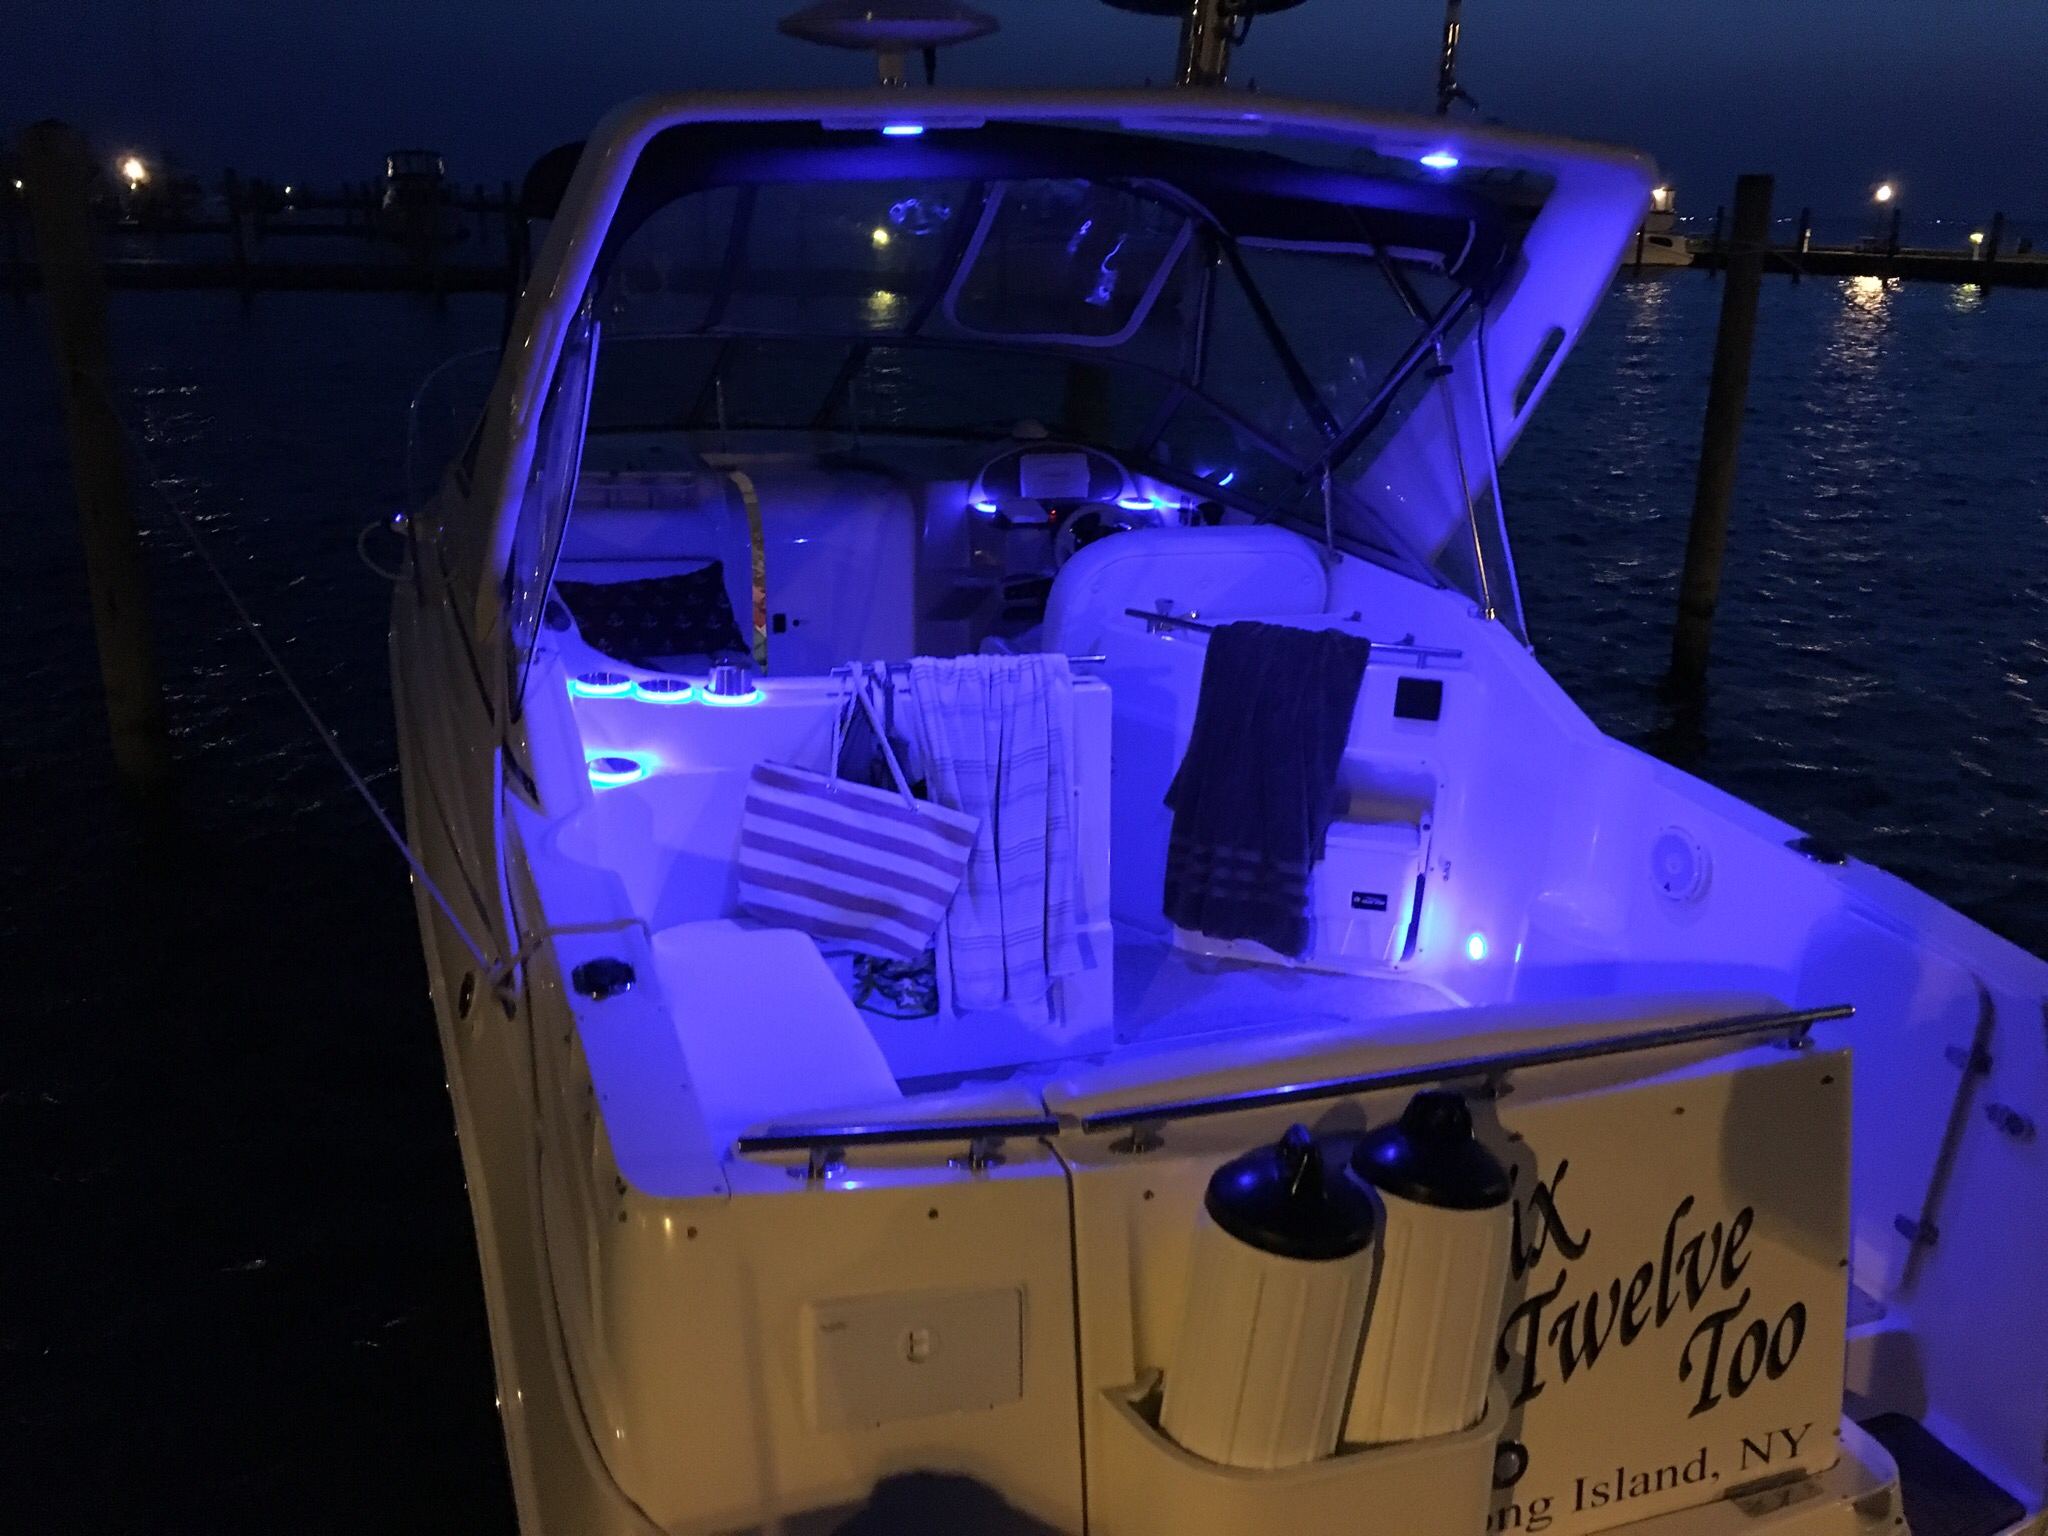 Dpdt Switch For Led Lighting  U2014 Rinker Boat Company